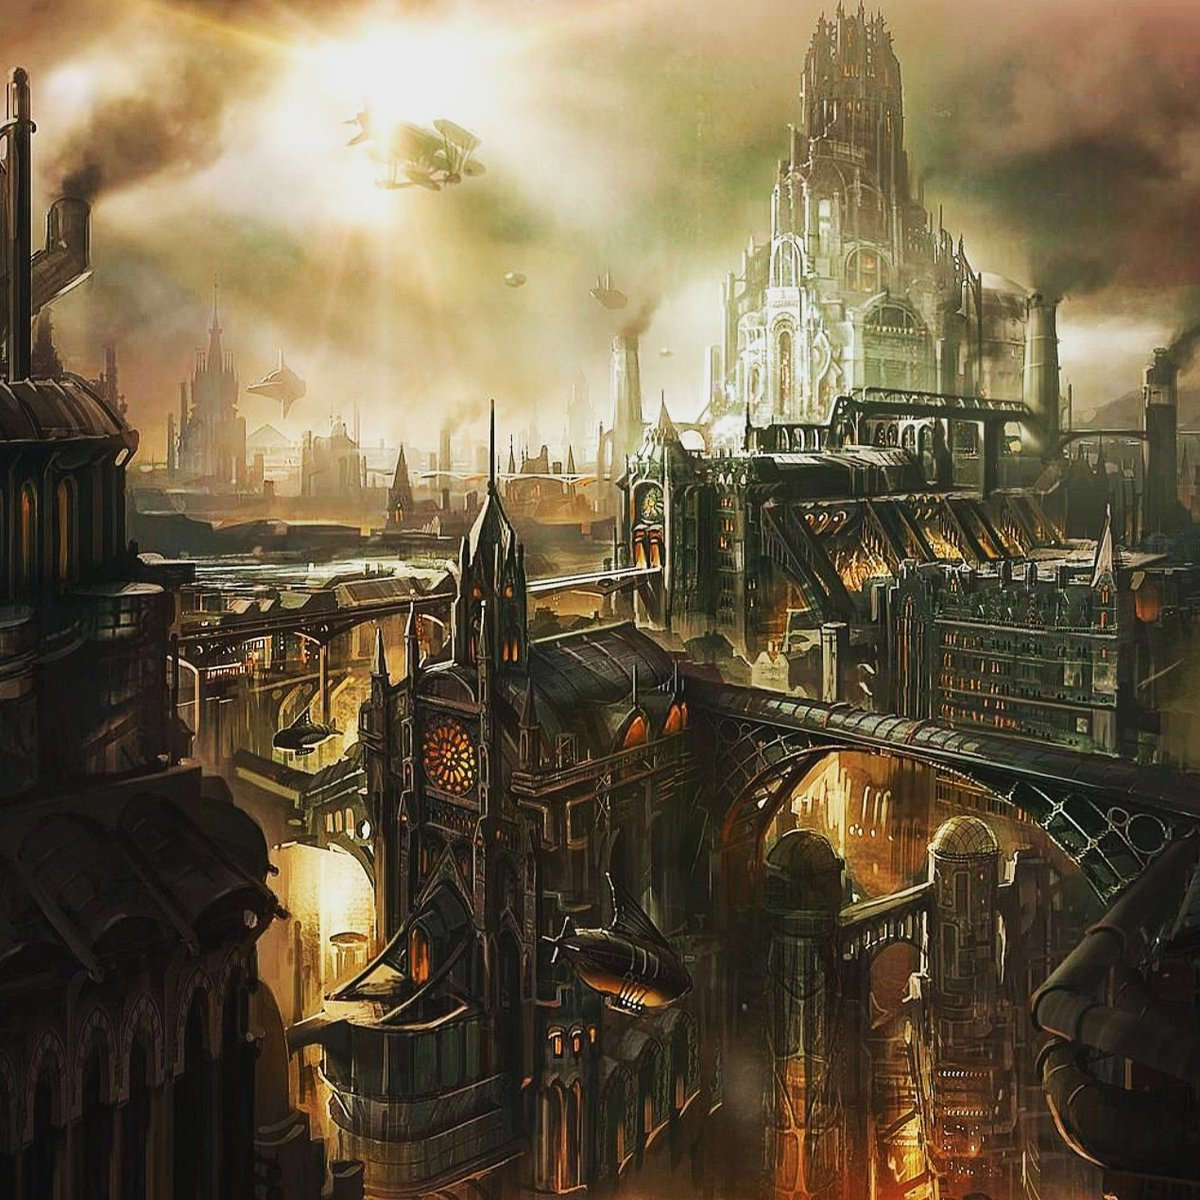 The Seagrave Compound #darkage #TheReckoningTurbines #steampunk